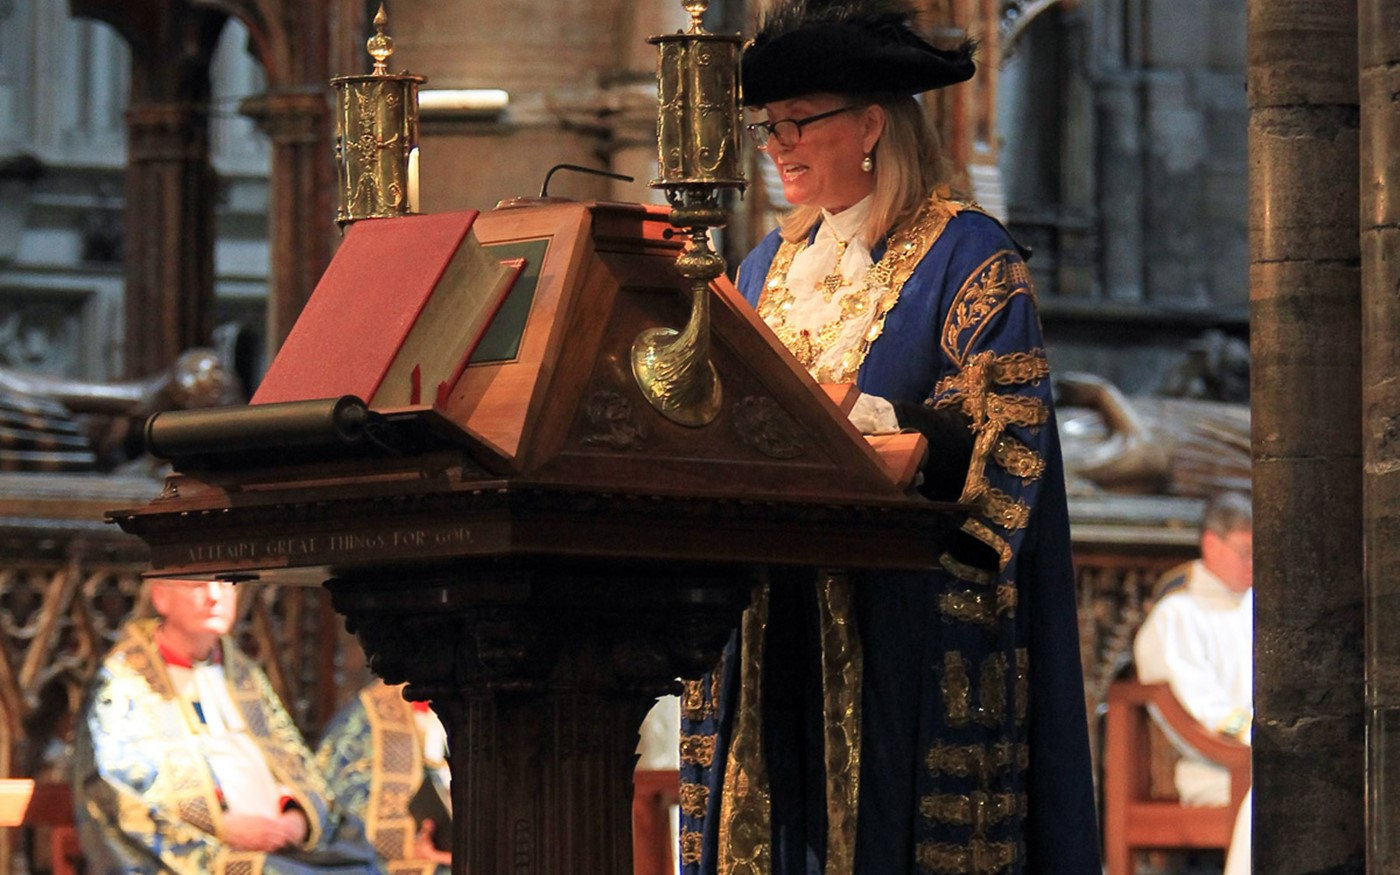 The Lord Mayor reads Acts 27: 33 - end